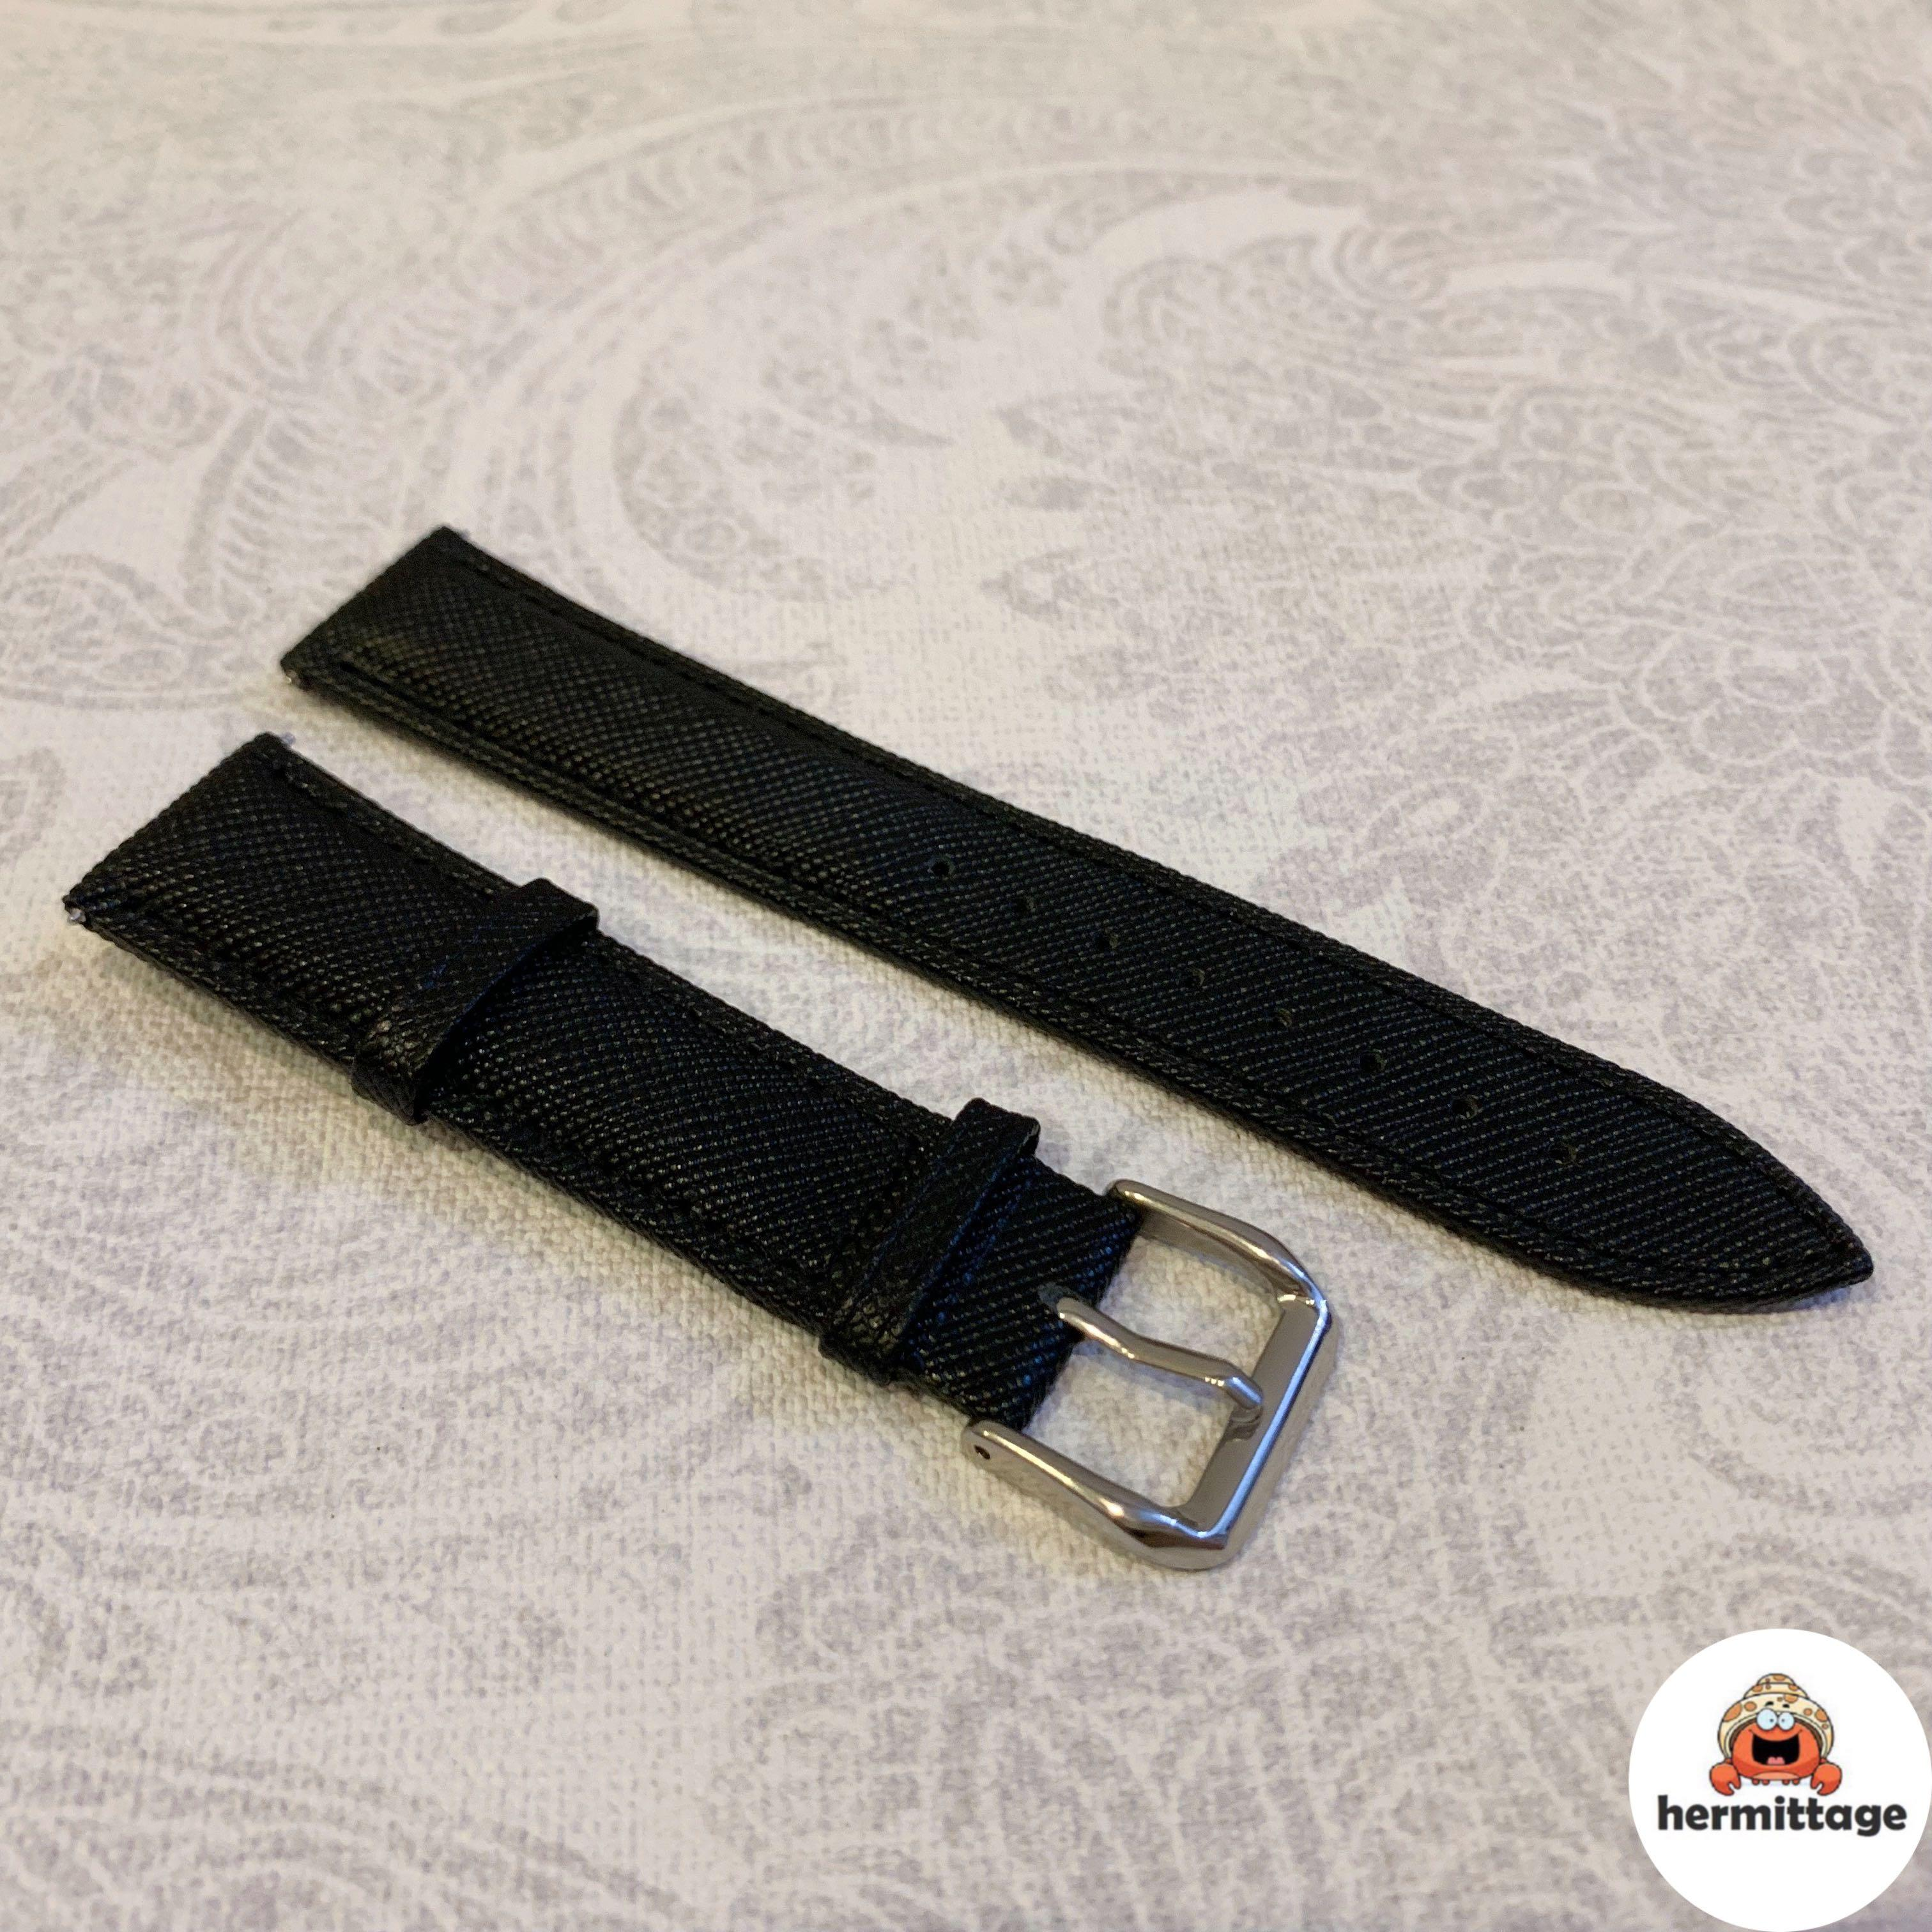 BRAND NEW 20MM SAFFIANO LEATHER STRAP (suitable for all watches with 20mm lug width. eg. rolex tudor tag heuer seiko iwc hamilton omega zenith cartier etc)